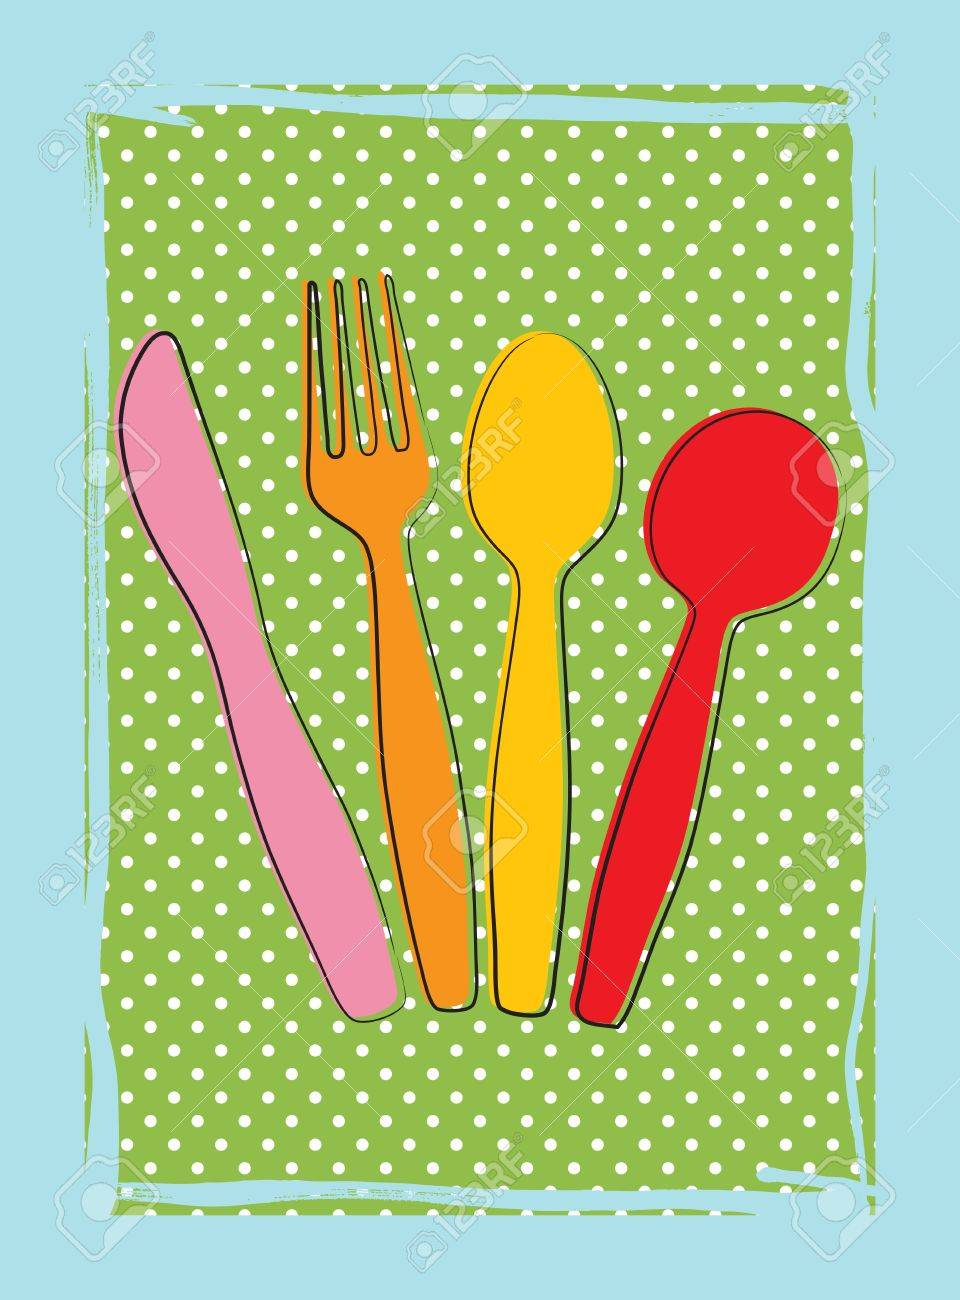 Dinnertime background with drawings of fork, knife and spoon (cutlery) in retro colours Stock Vector - 12759474